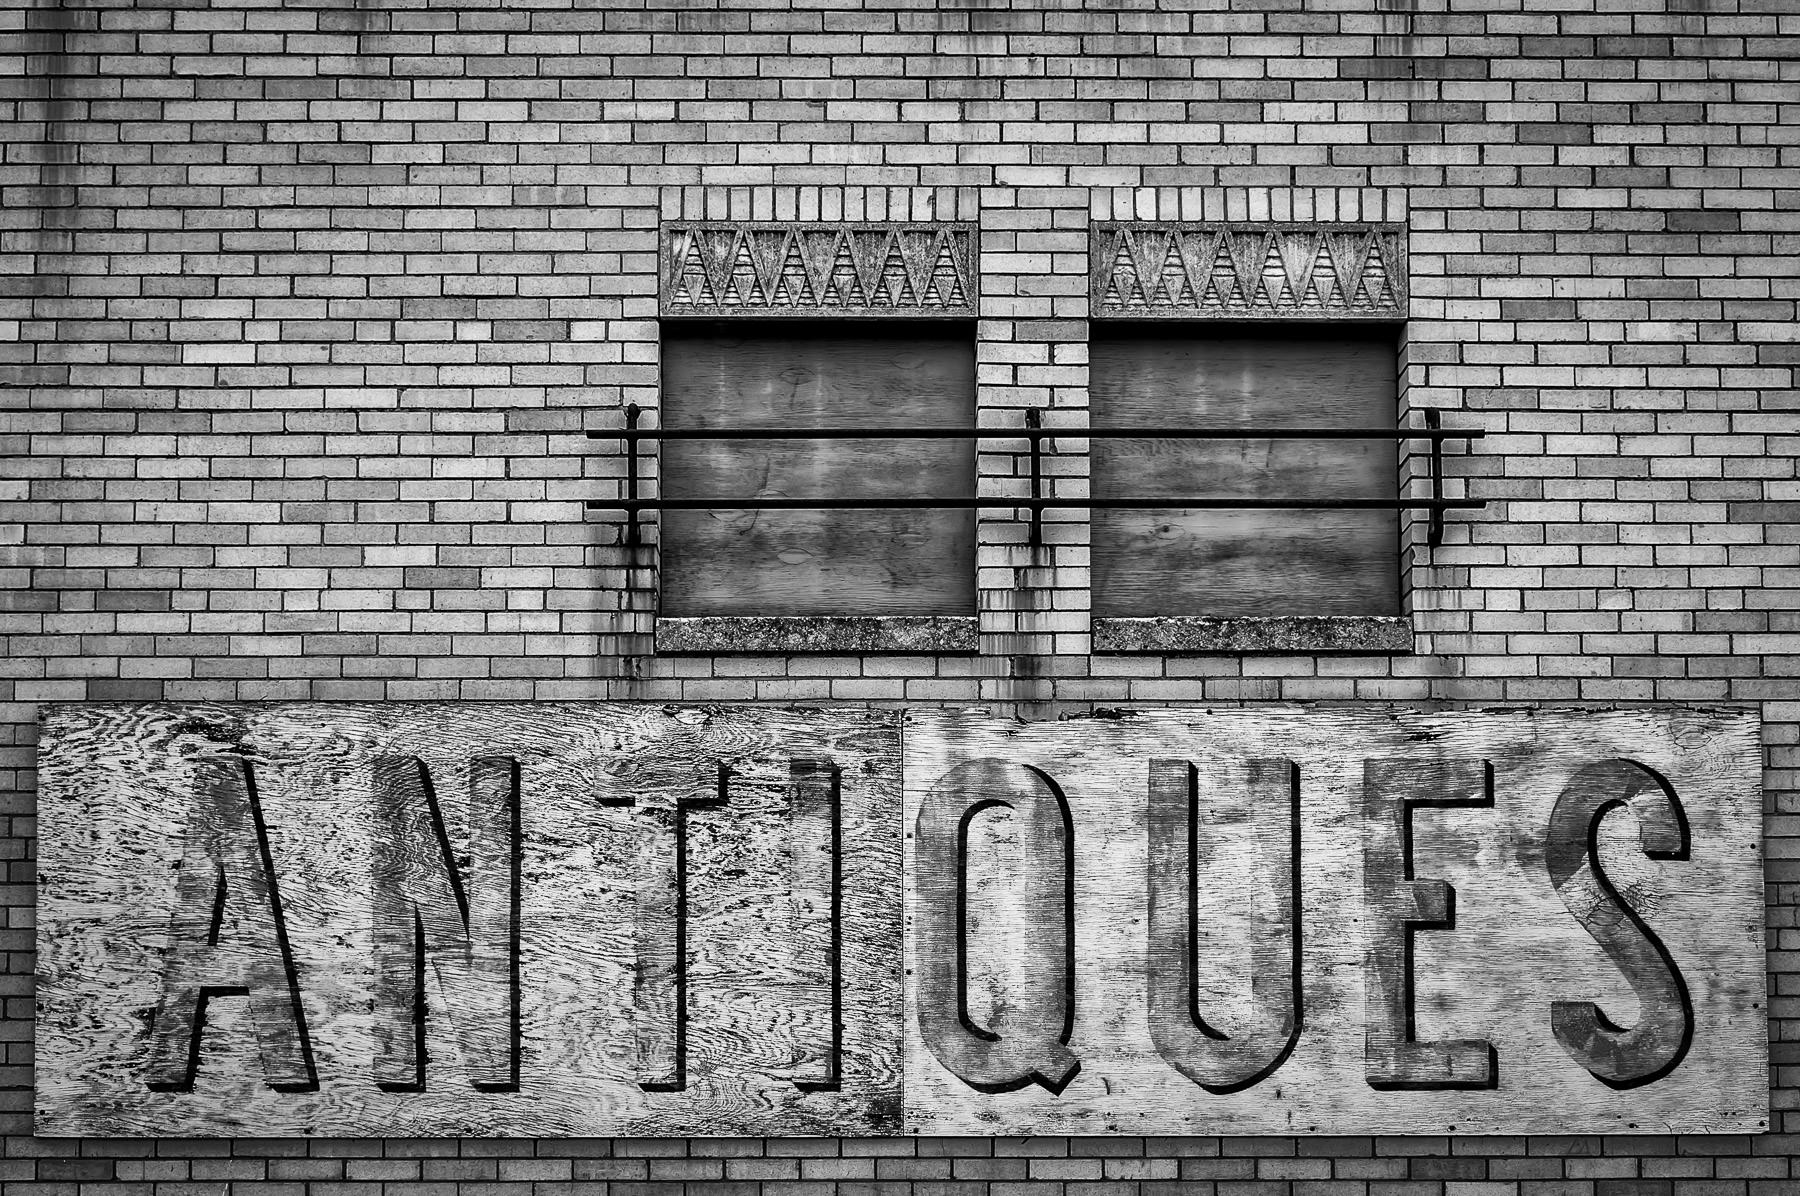 A fading plywood sign advertising an antiques shop in the East Texas town of Gladewater.